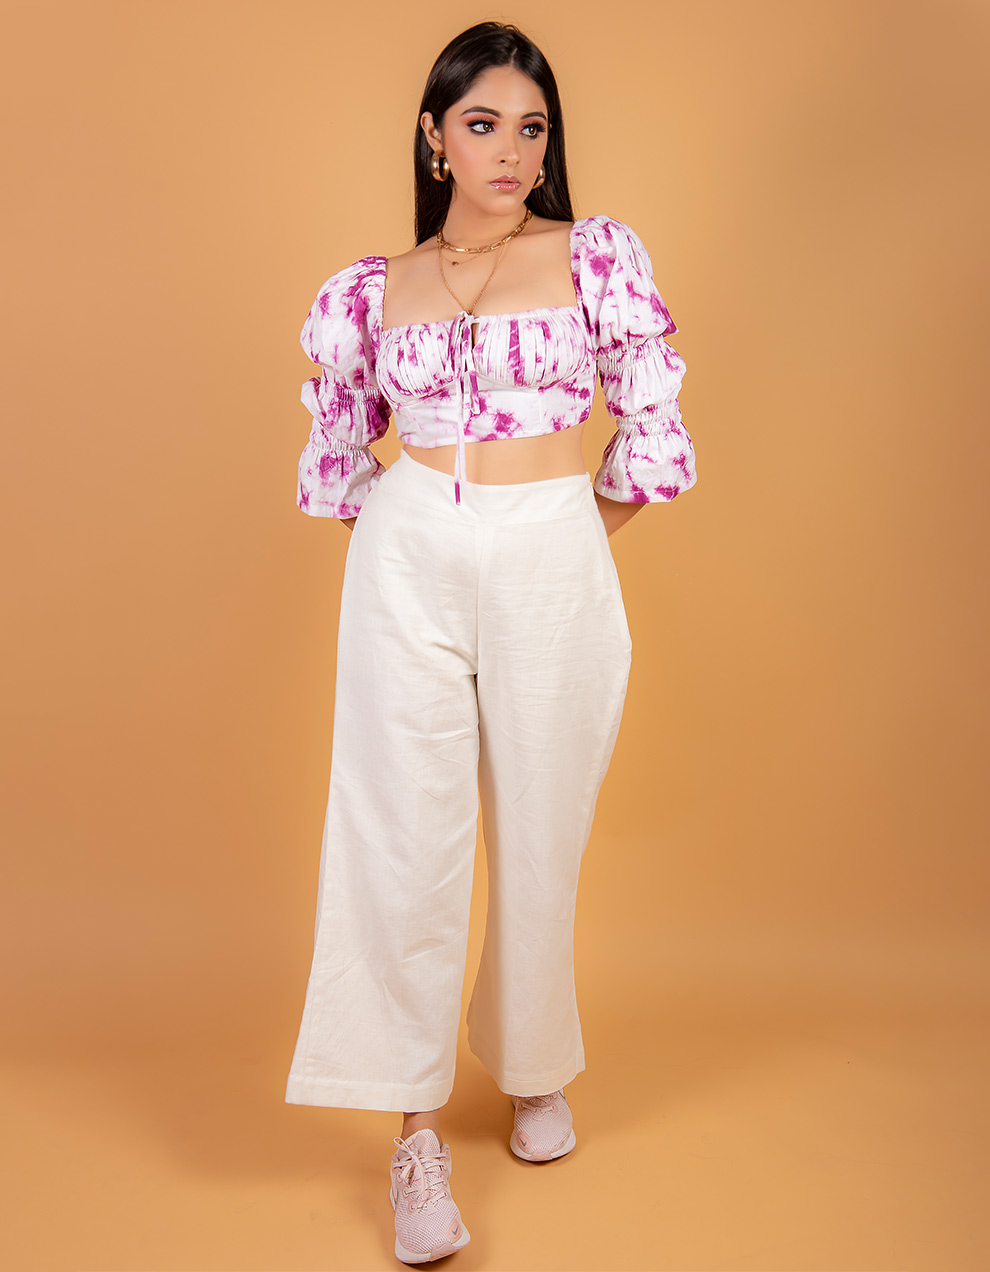 Purple Crop top with white high waist pant